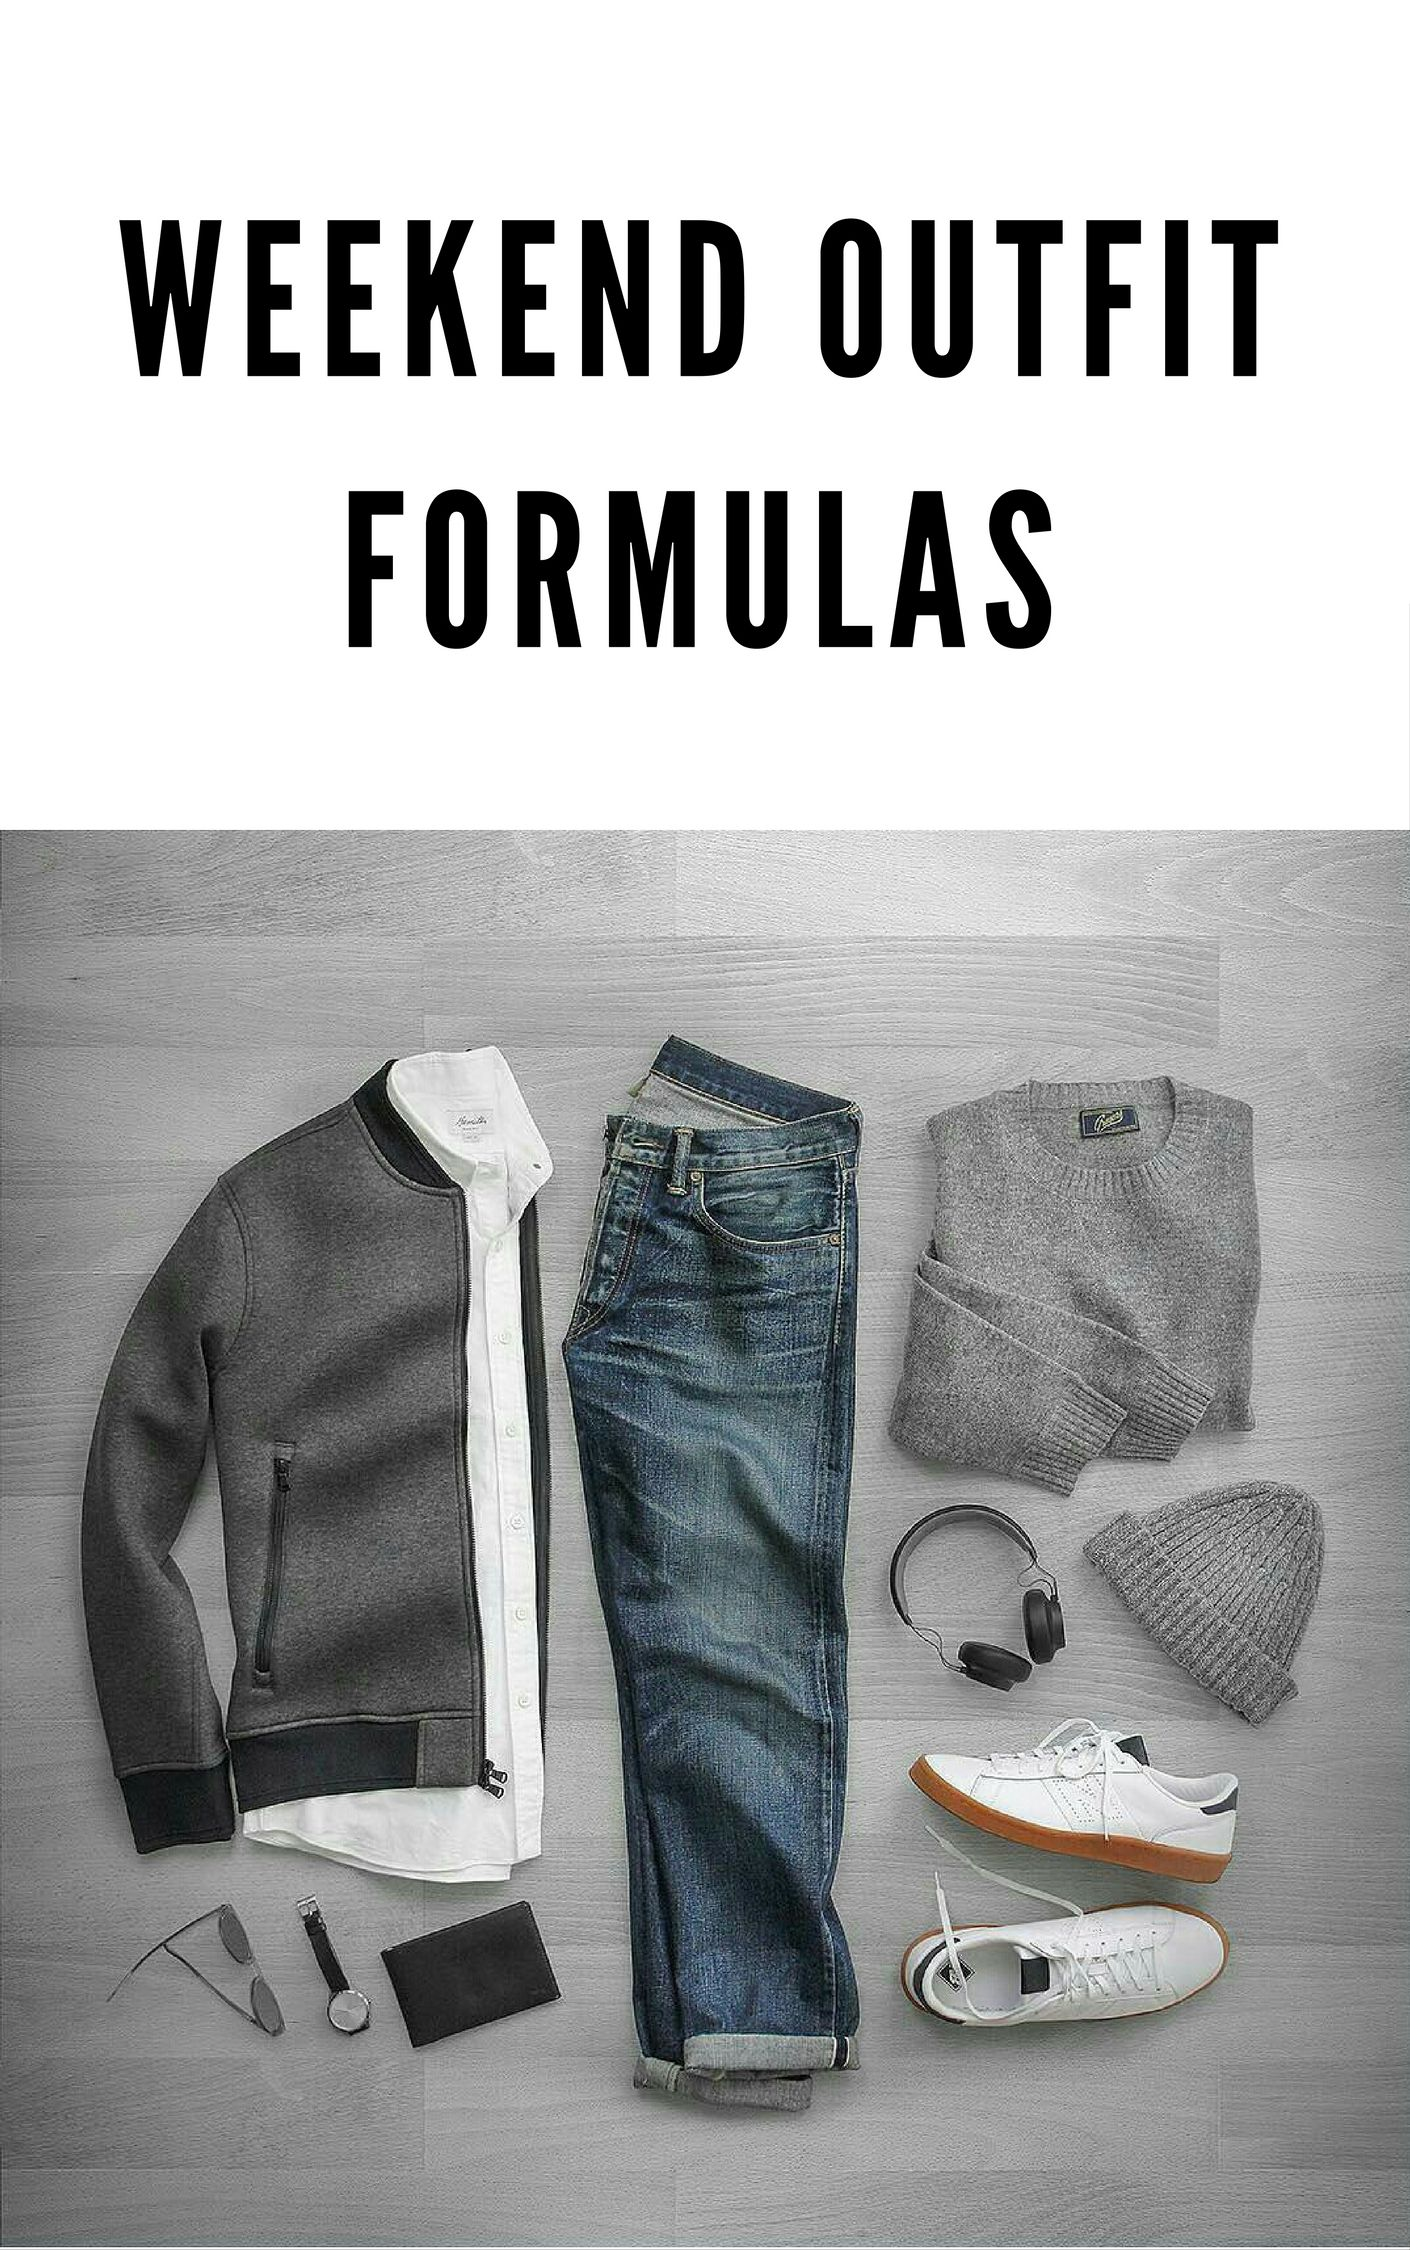 WEEKEND OUTFIT FORMULAS #mens #fashion